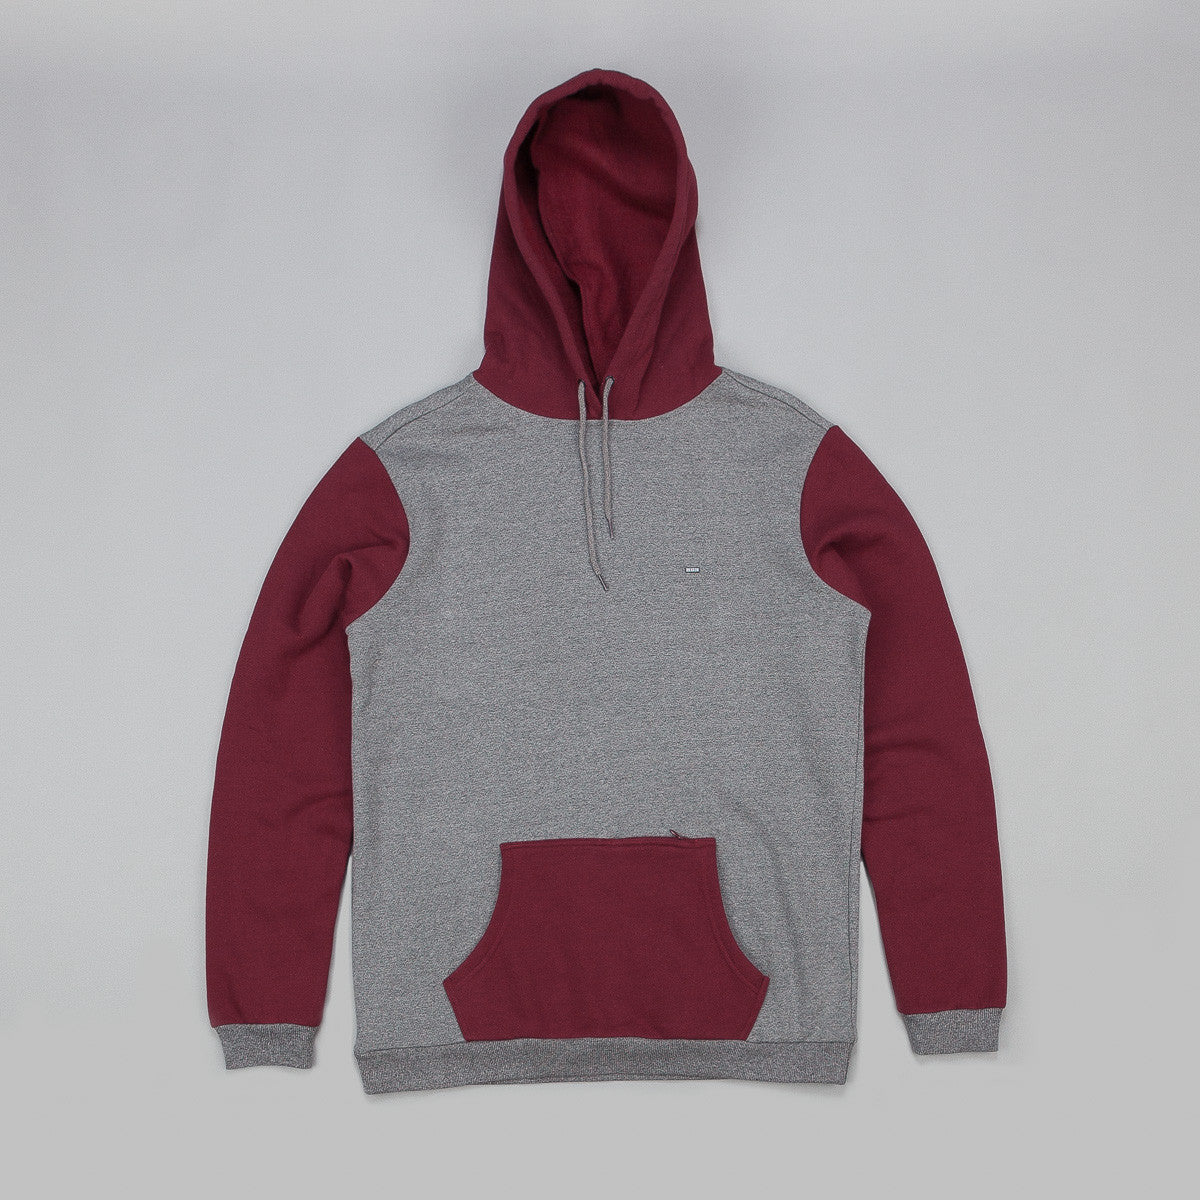 Kr3w Cyclone Hooded Sweatshirt